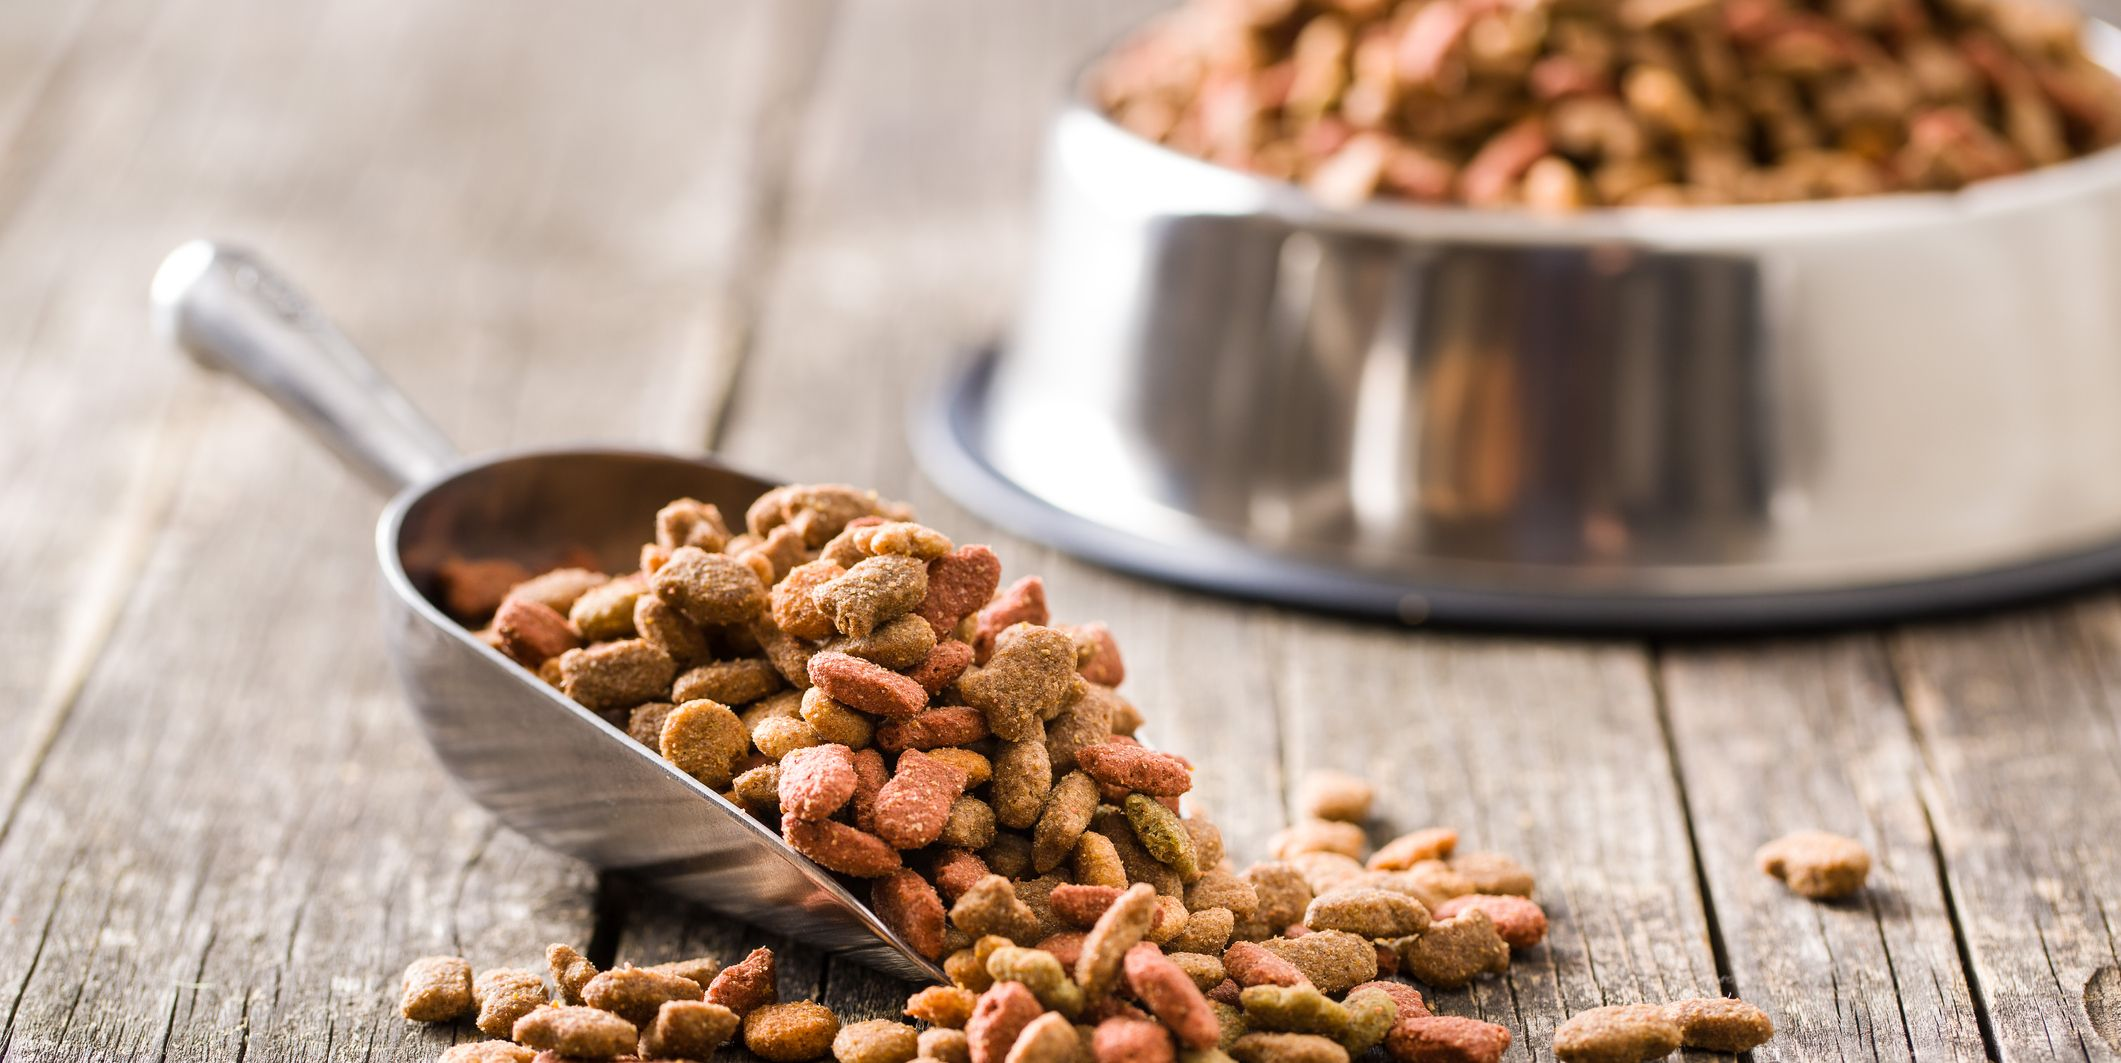 Purina Animal Nutrition Recalls 4 Products